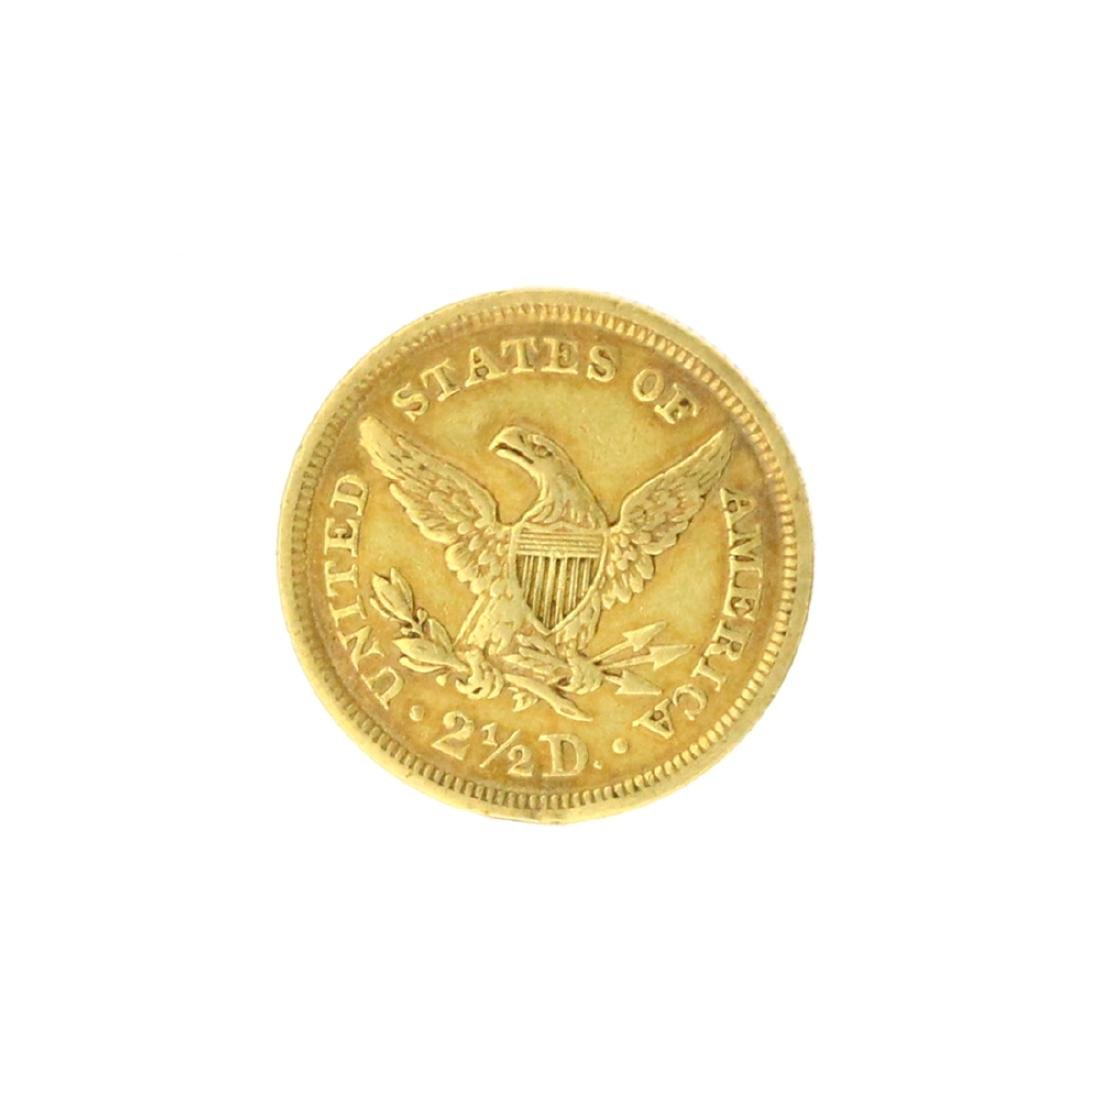 Extremely Rare 1843 $2.50 U.S. Liberty Head Gold Coin - 2